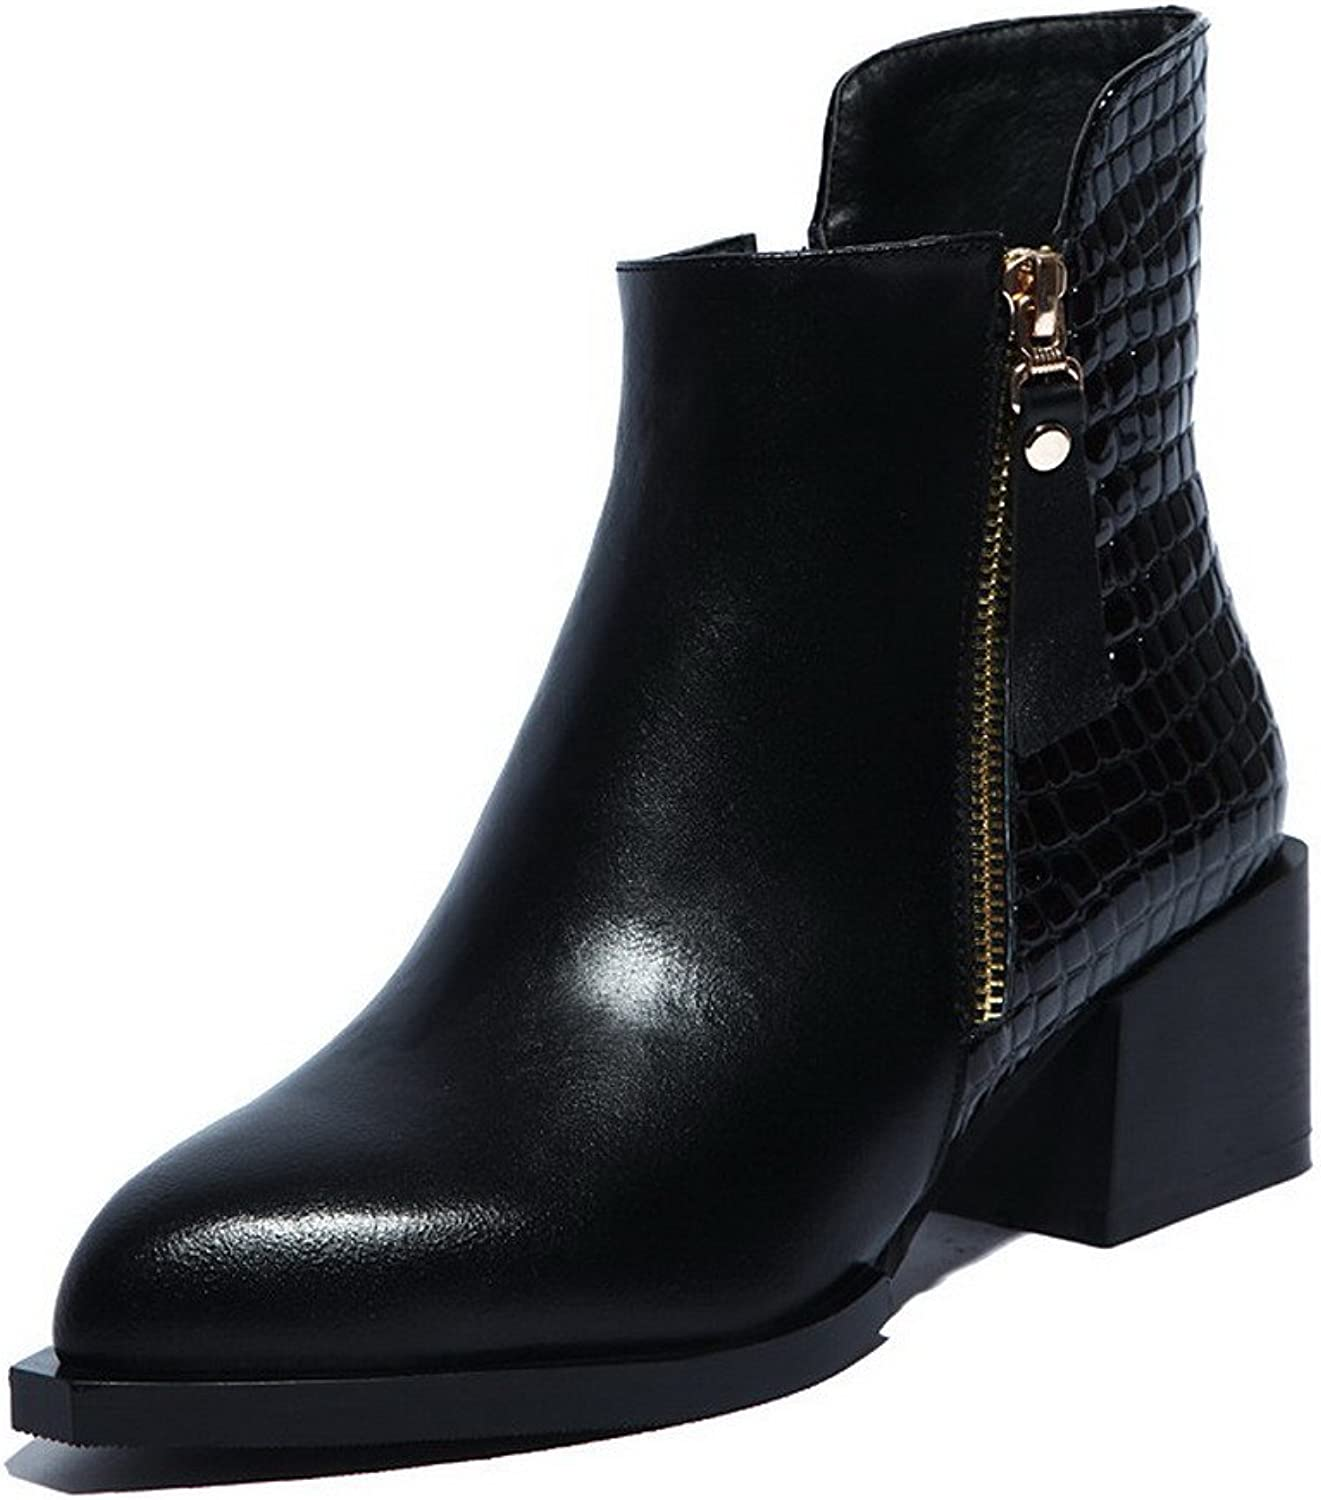 WeenFashion Women's Cow Leather Low-Heels Pointed-Toe Boots with Rubber Soles and Square Heels